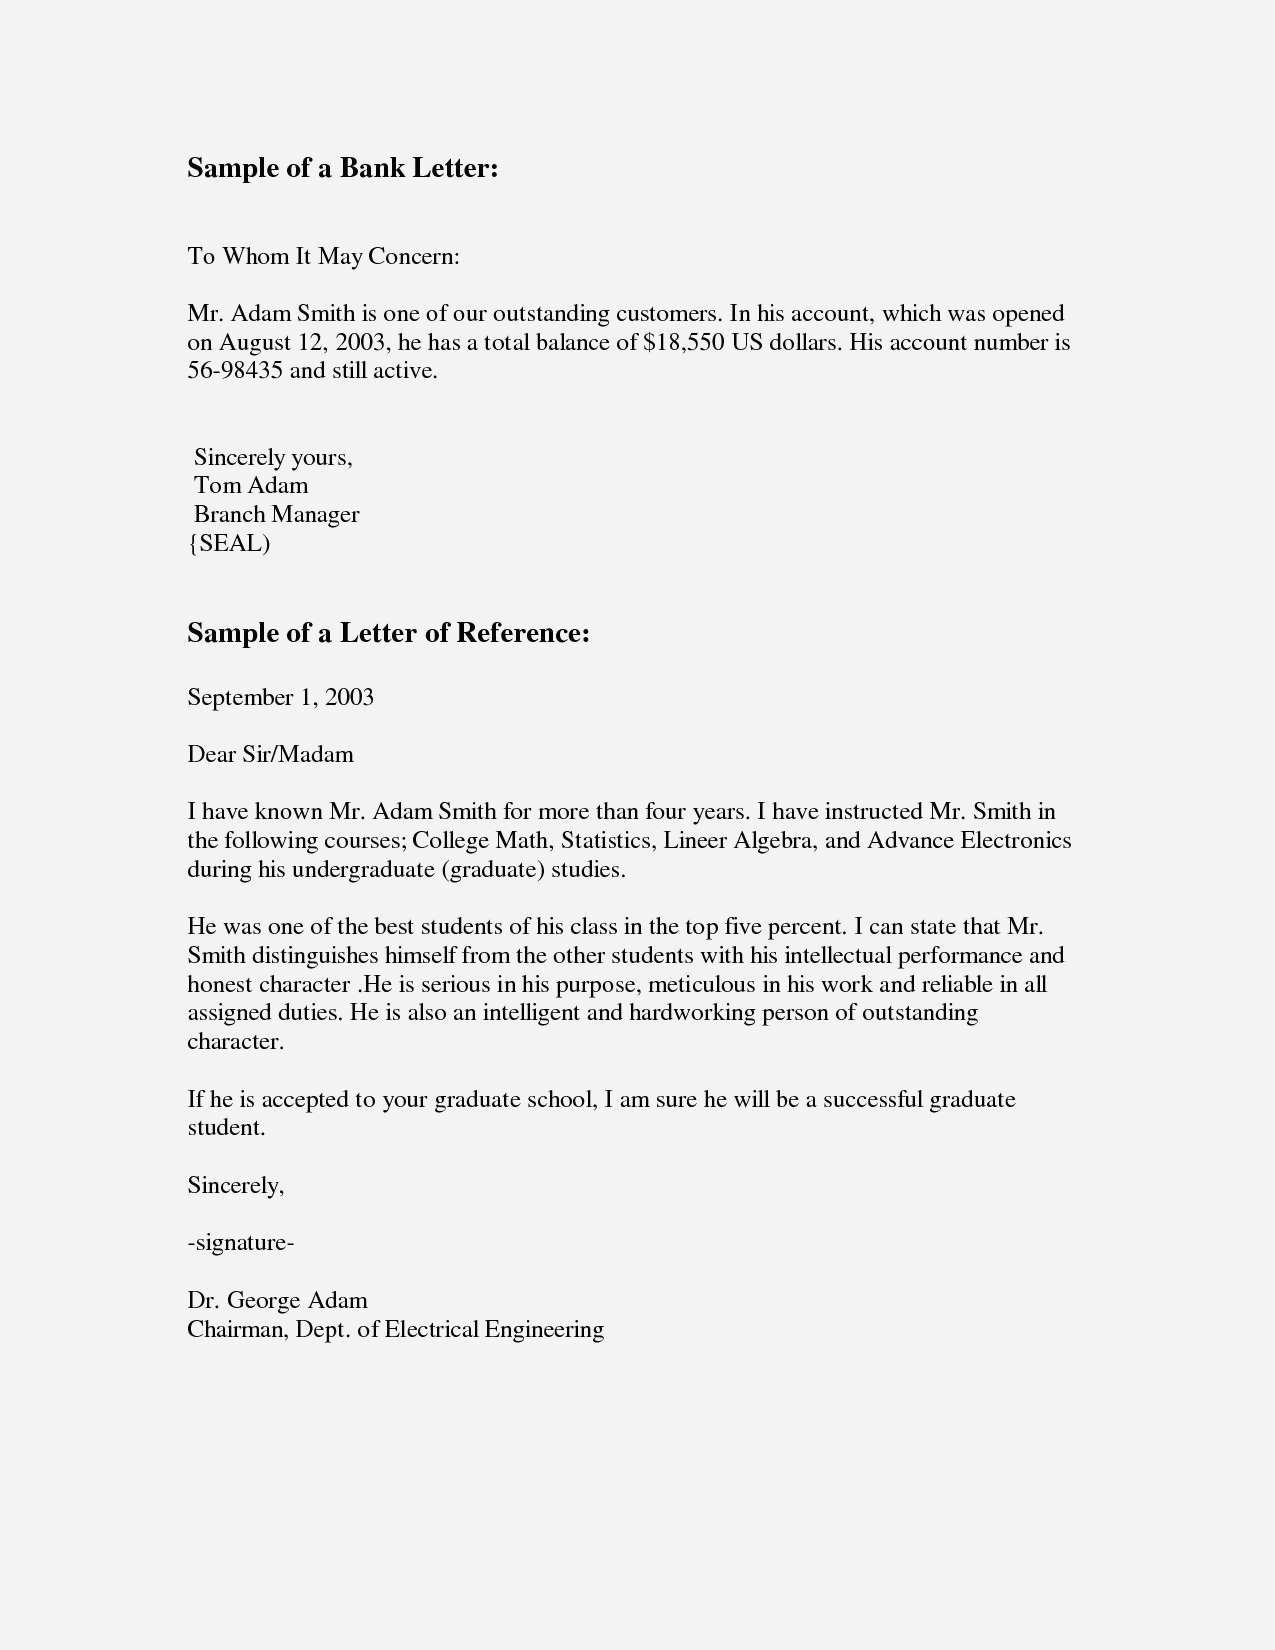 letter of references template example-Formal Letter Template Unique bylaws Template 0d Wallpapers 50 ficial Letter Template 18-o